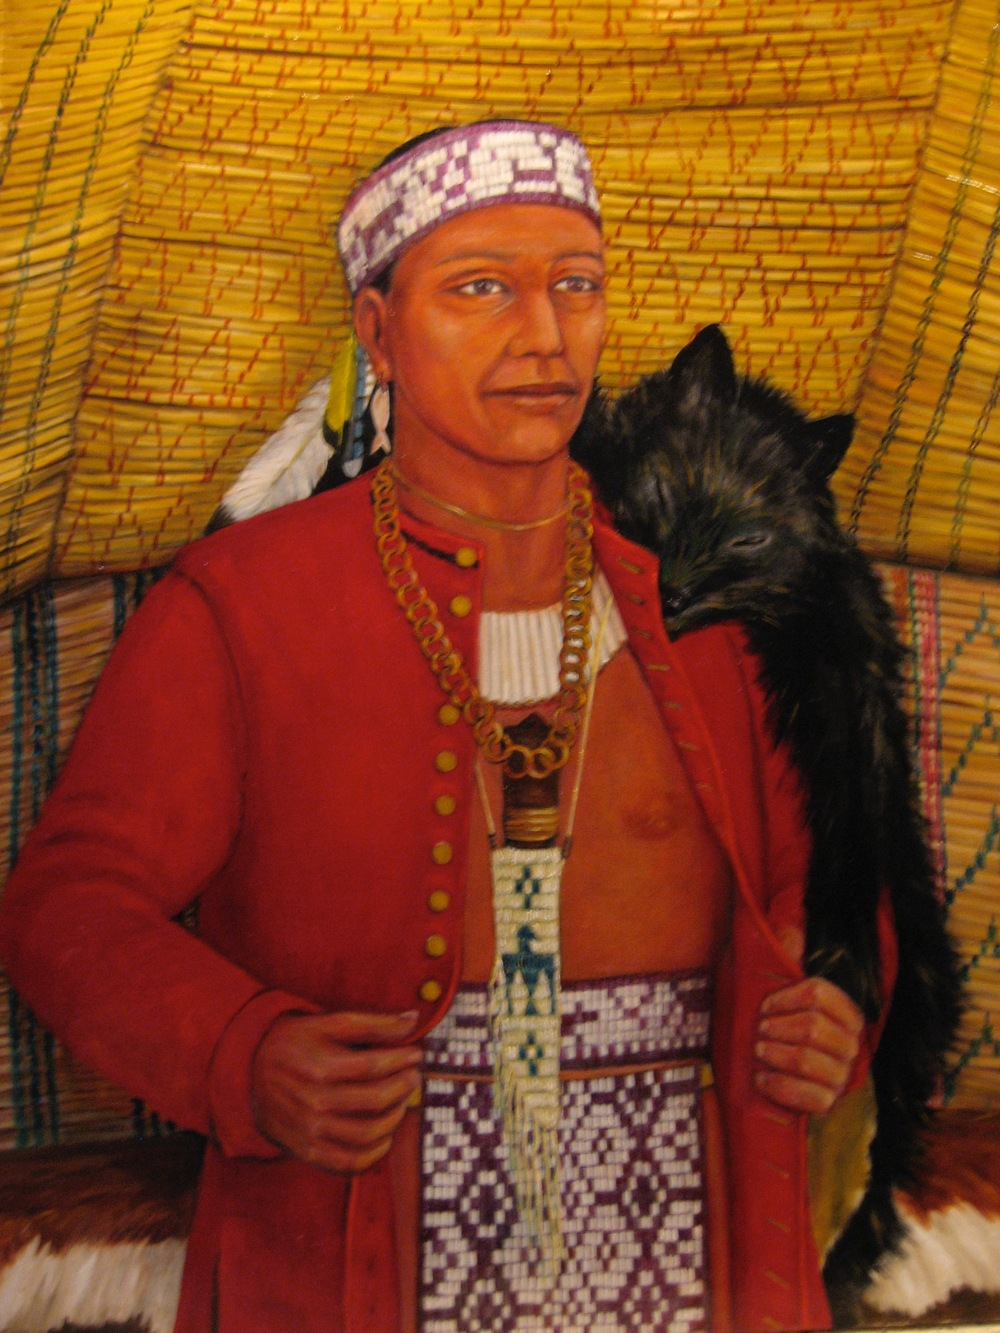 Massasoit wearing the red horseman's coat that he was given as a gift in the spring of 1621 by Edward Winslow and Stephen Hopkins on behalf of the Plymouth colonists. Painting courtesy of Ruth DeWilde-Major.